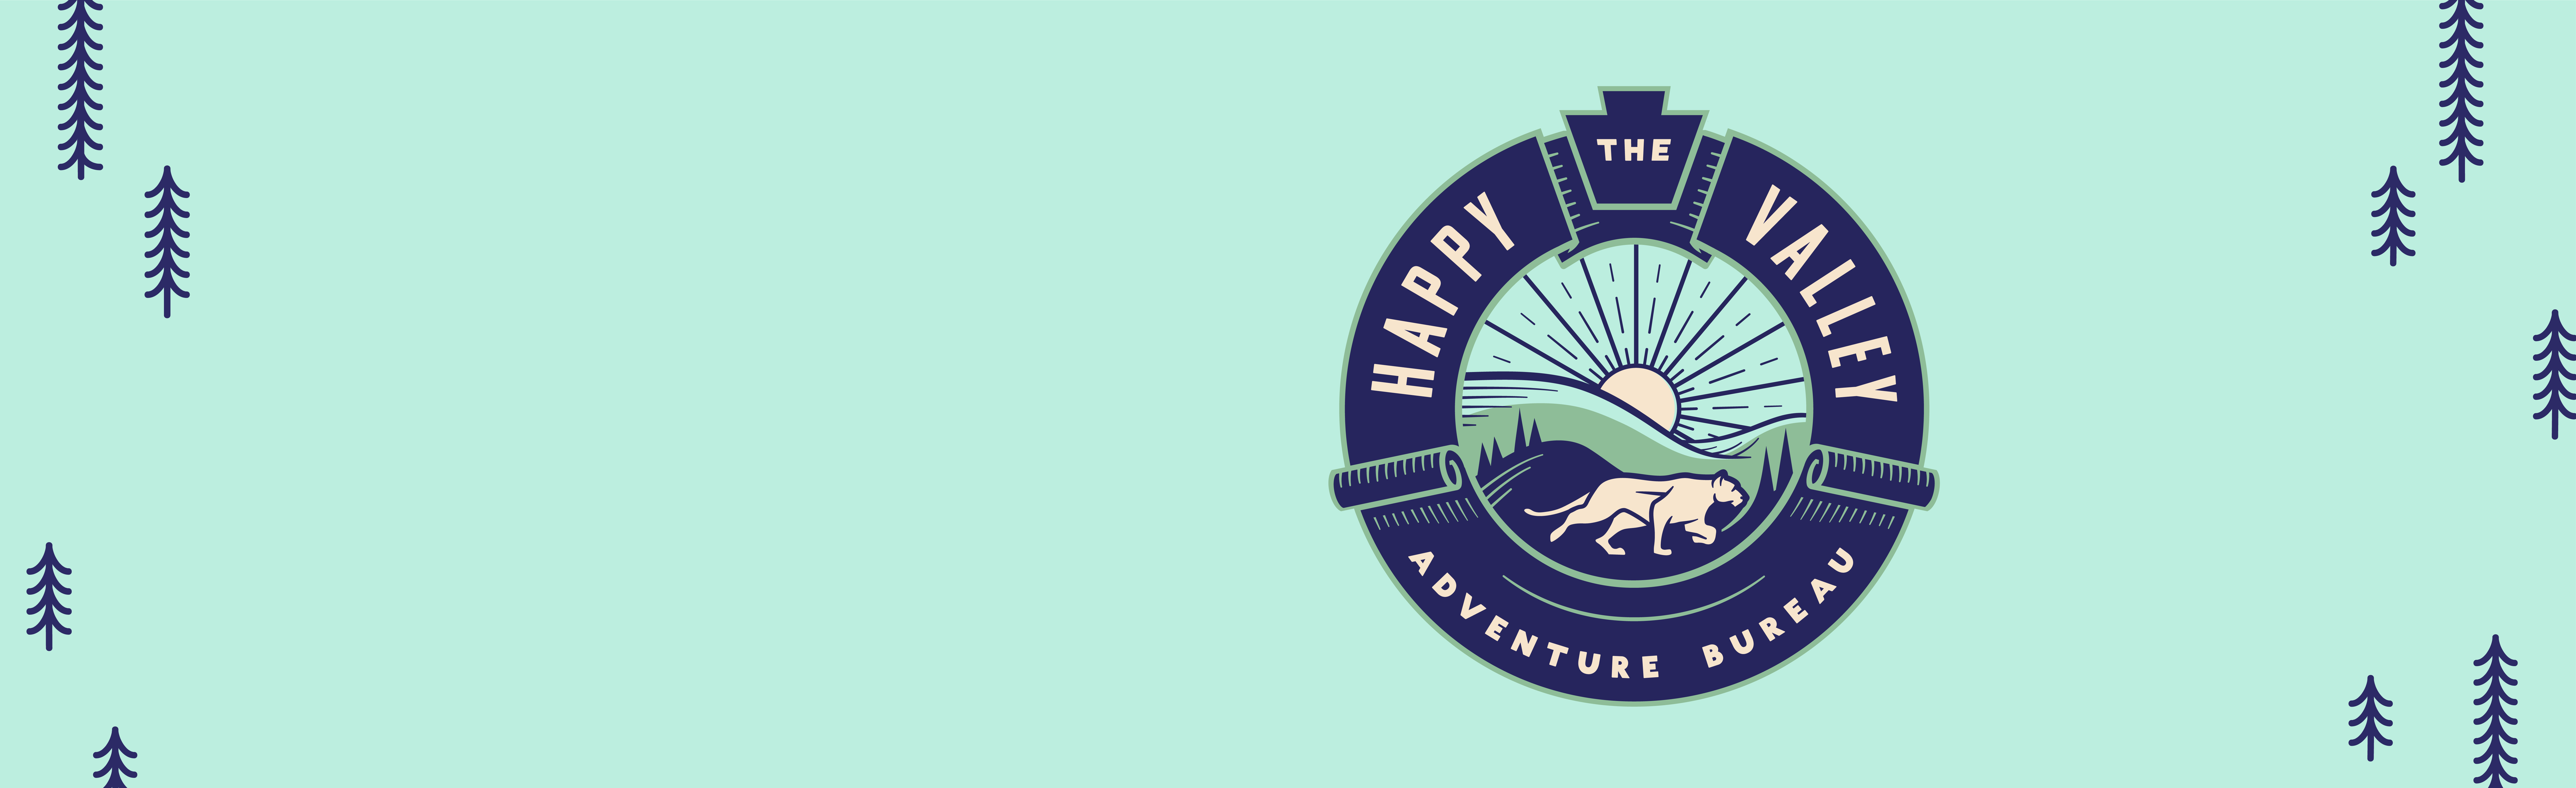 The Happy Valley Adventure Bureau Press Release Banner